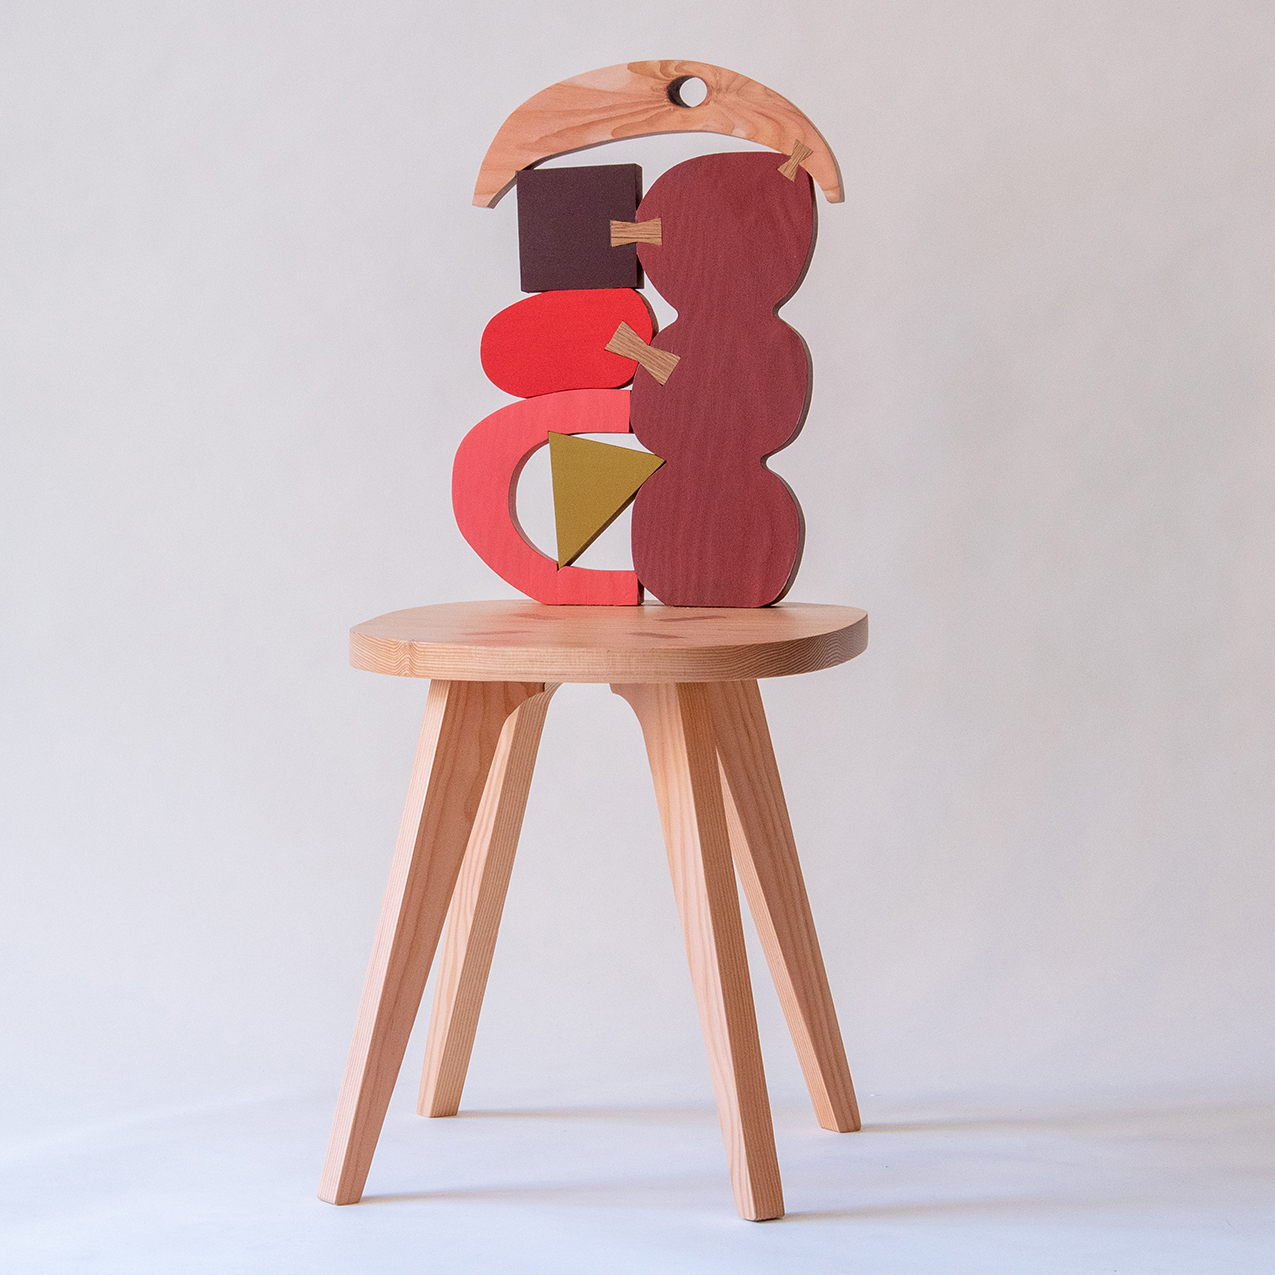 Abstract Assembly - chair no 1 - Donna Wilson